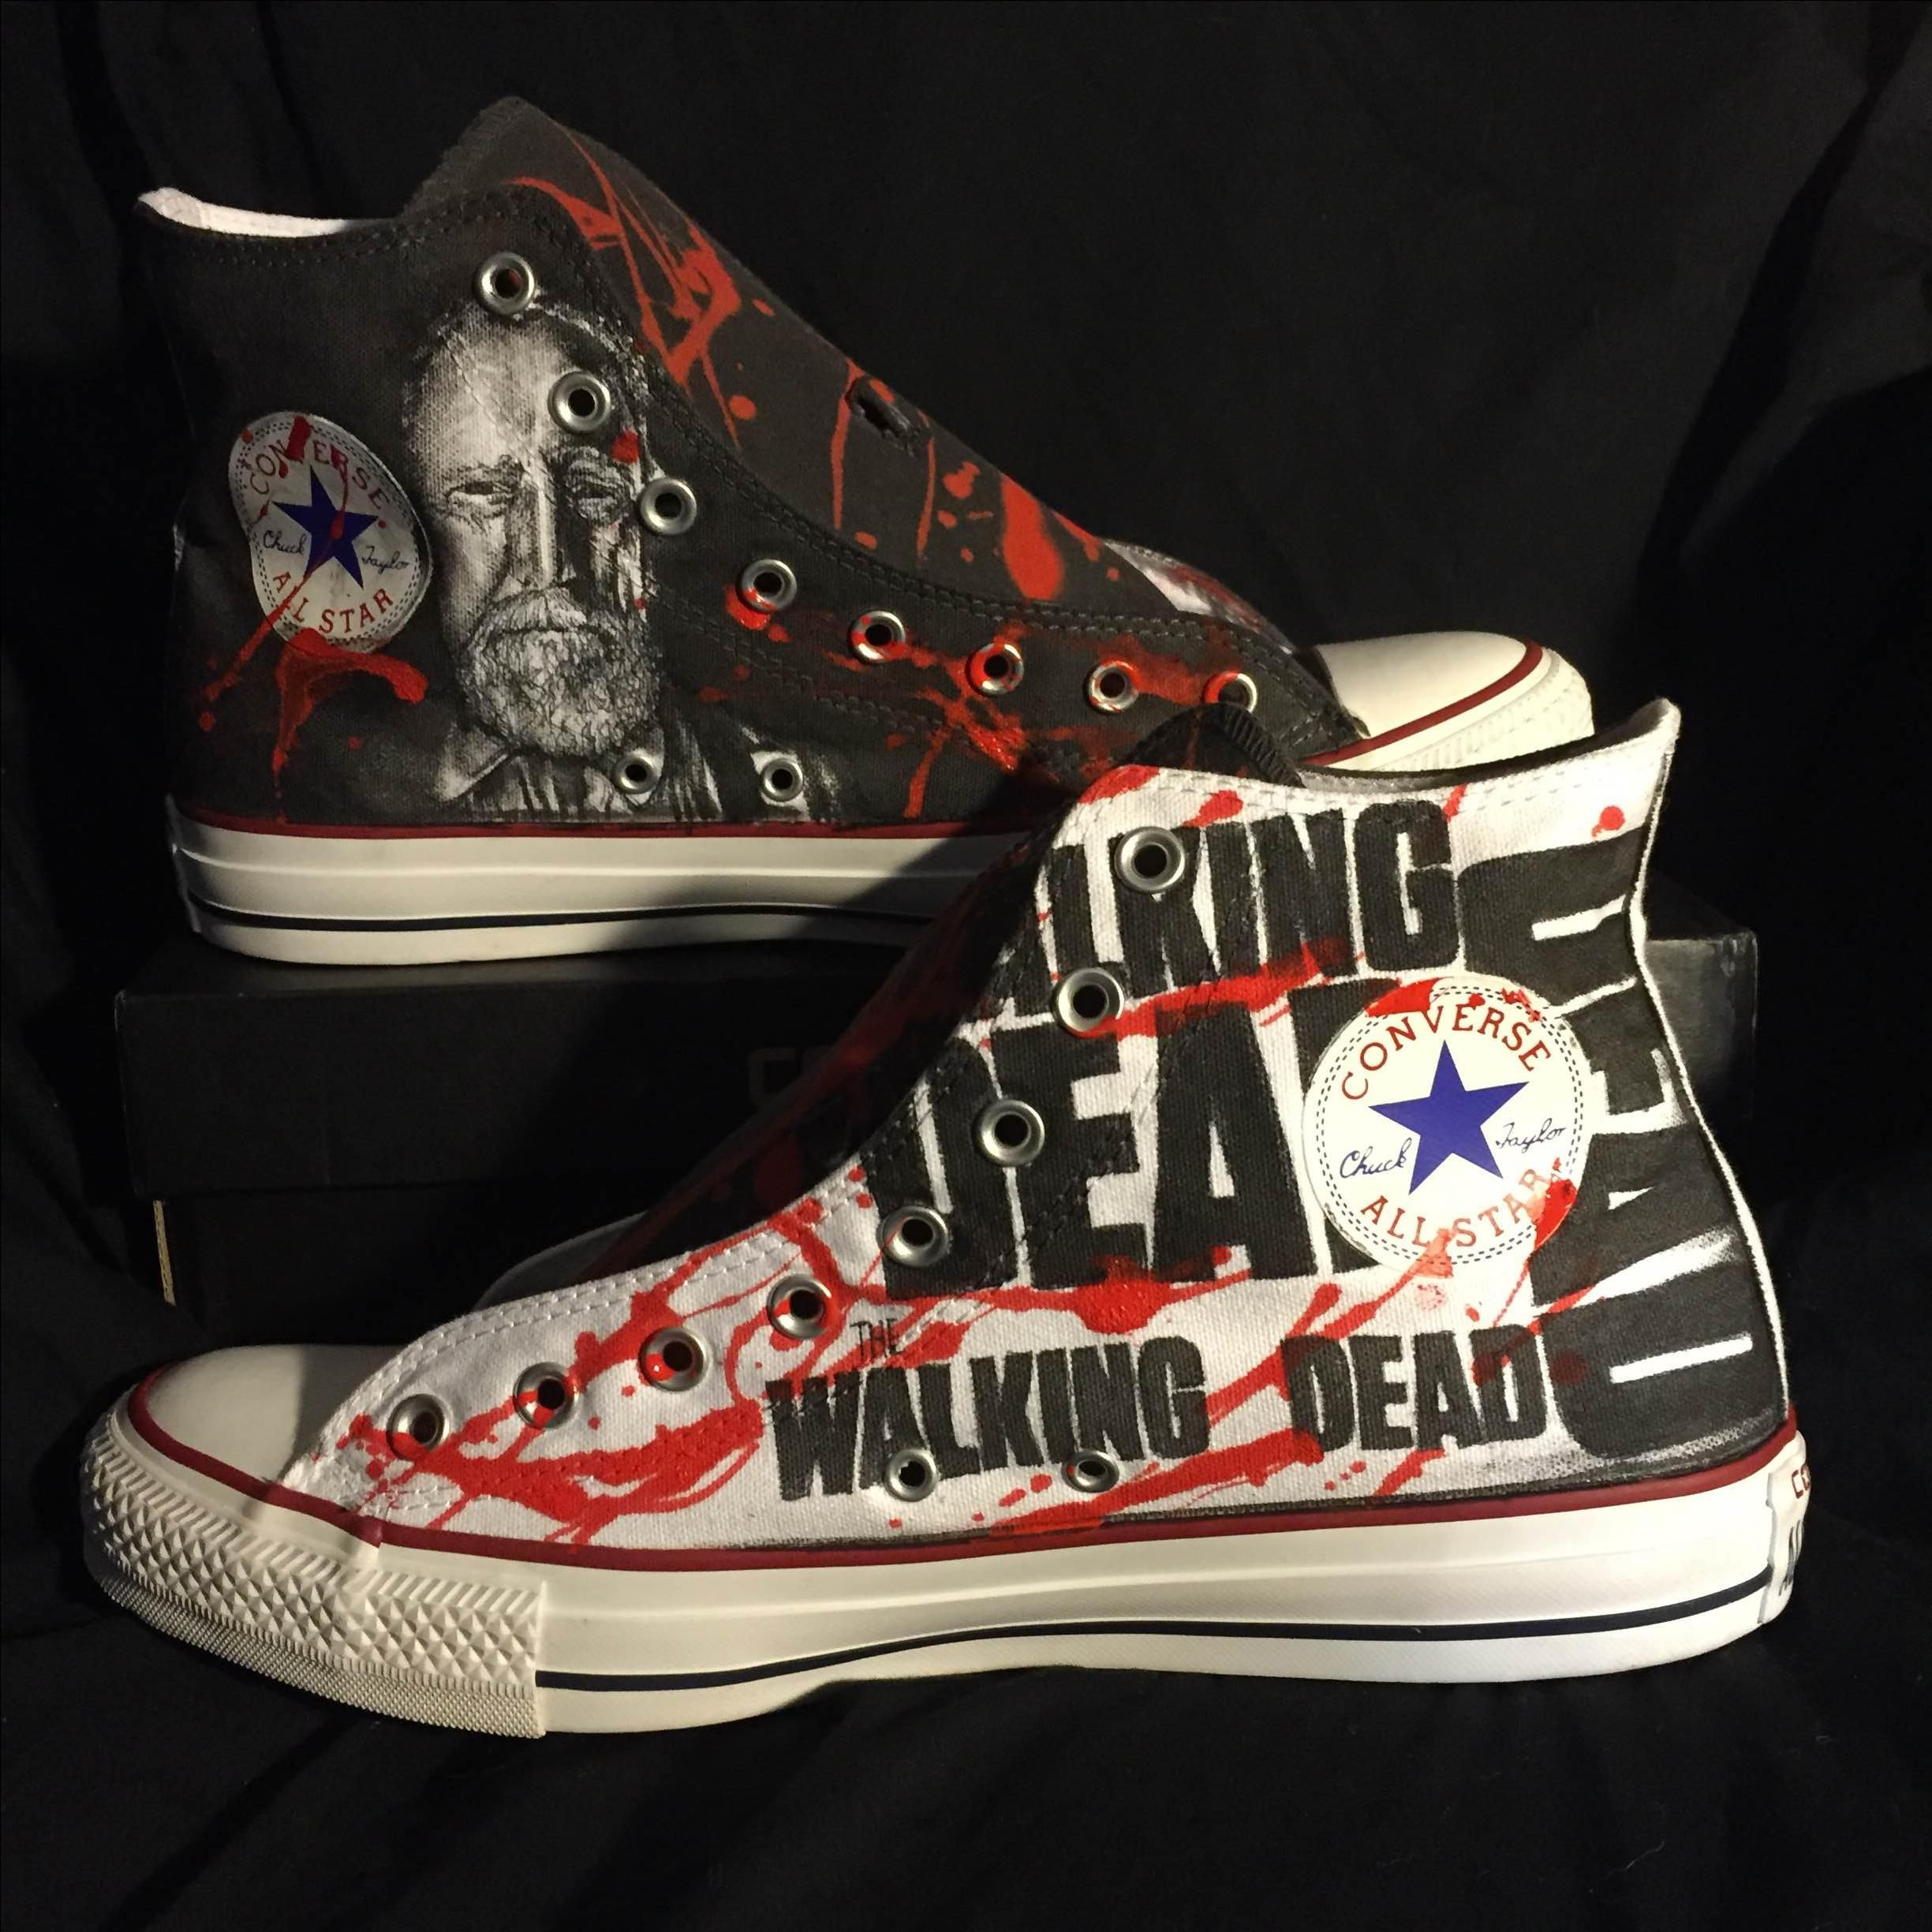 Walking Dead Converse Shoes For Sale - Buy handmade hand drawn the walking dead custom shoes made to order from alzado company custommade com